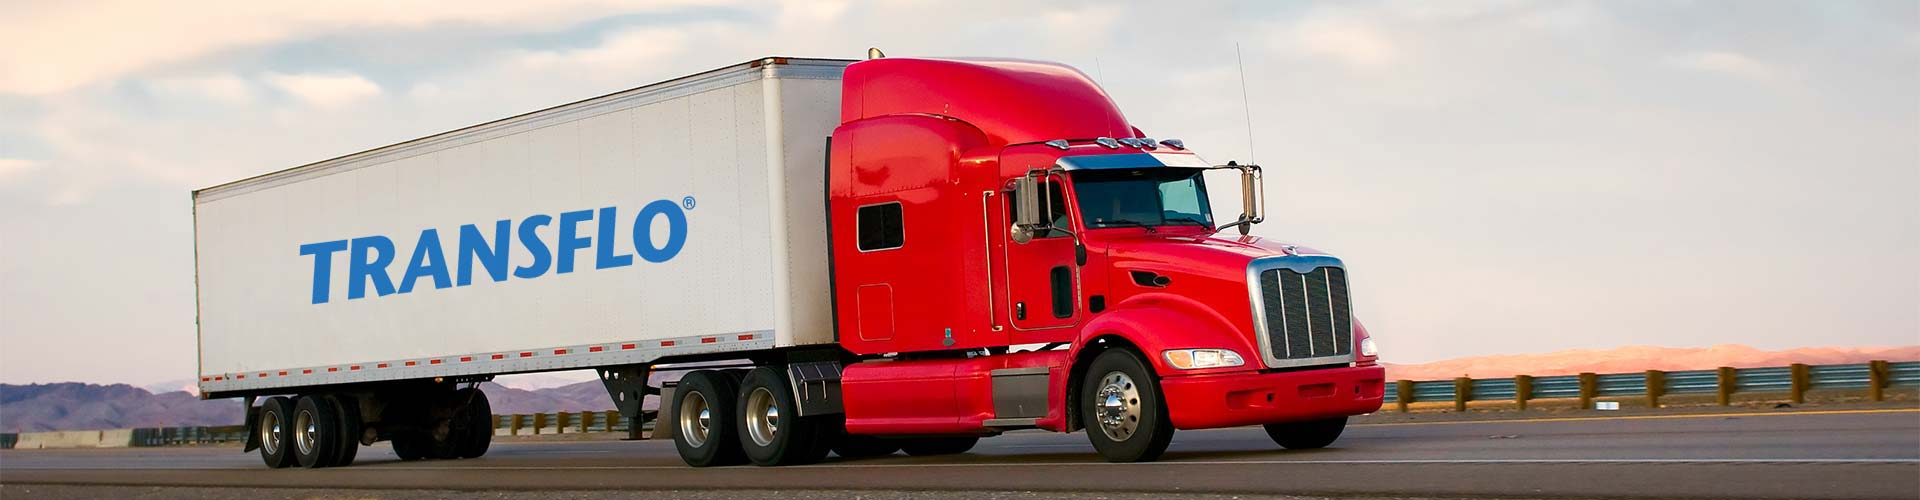 ELD and HOS Trucking Software Solutions | Transflo